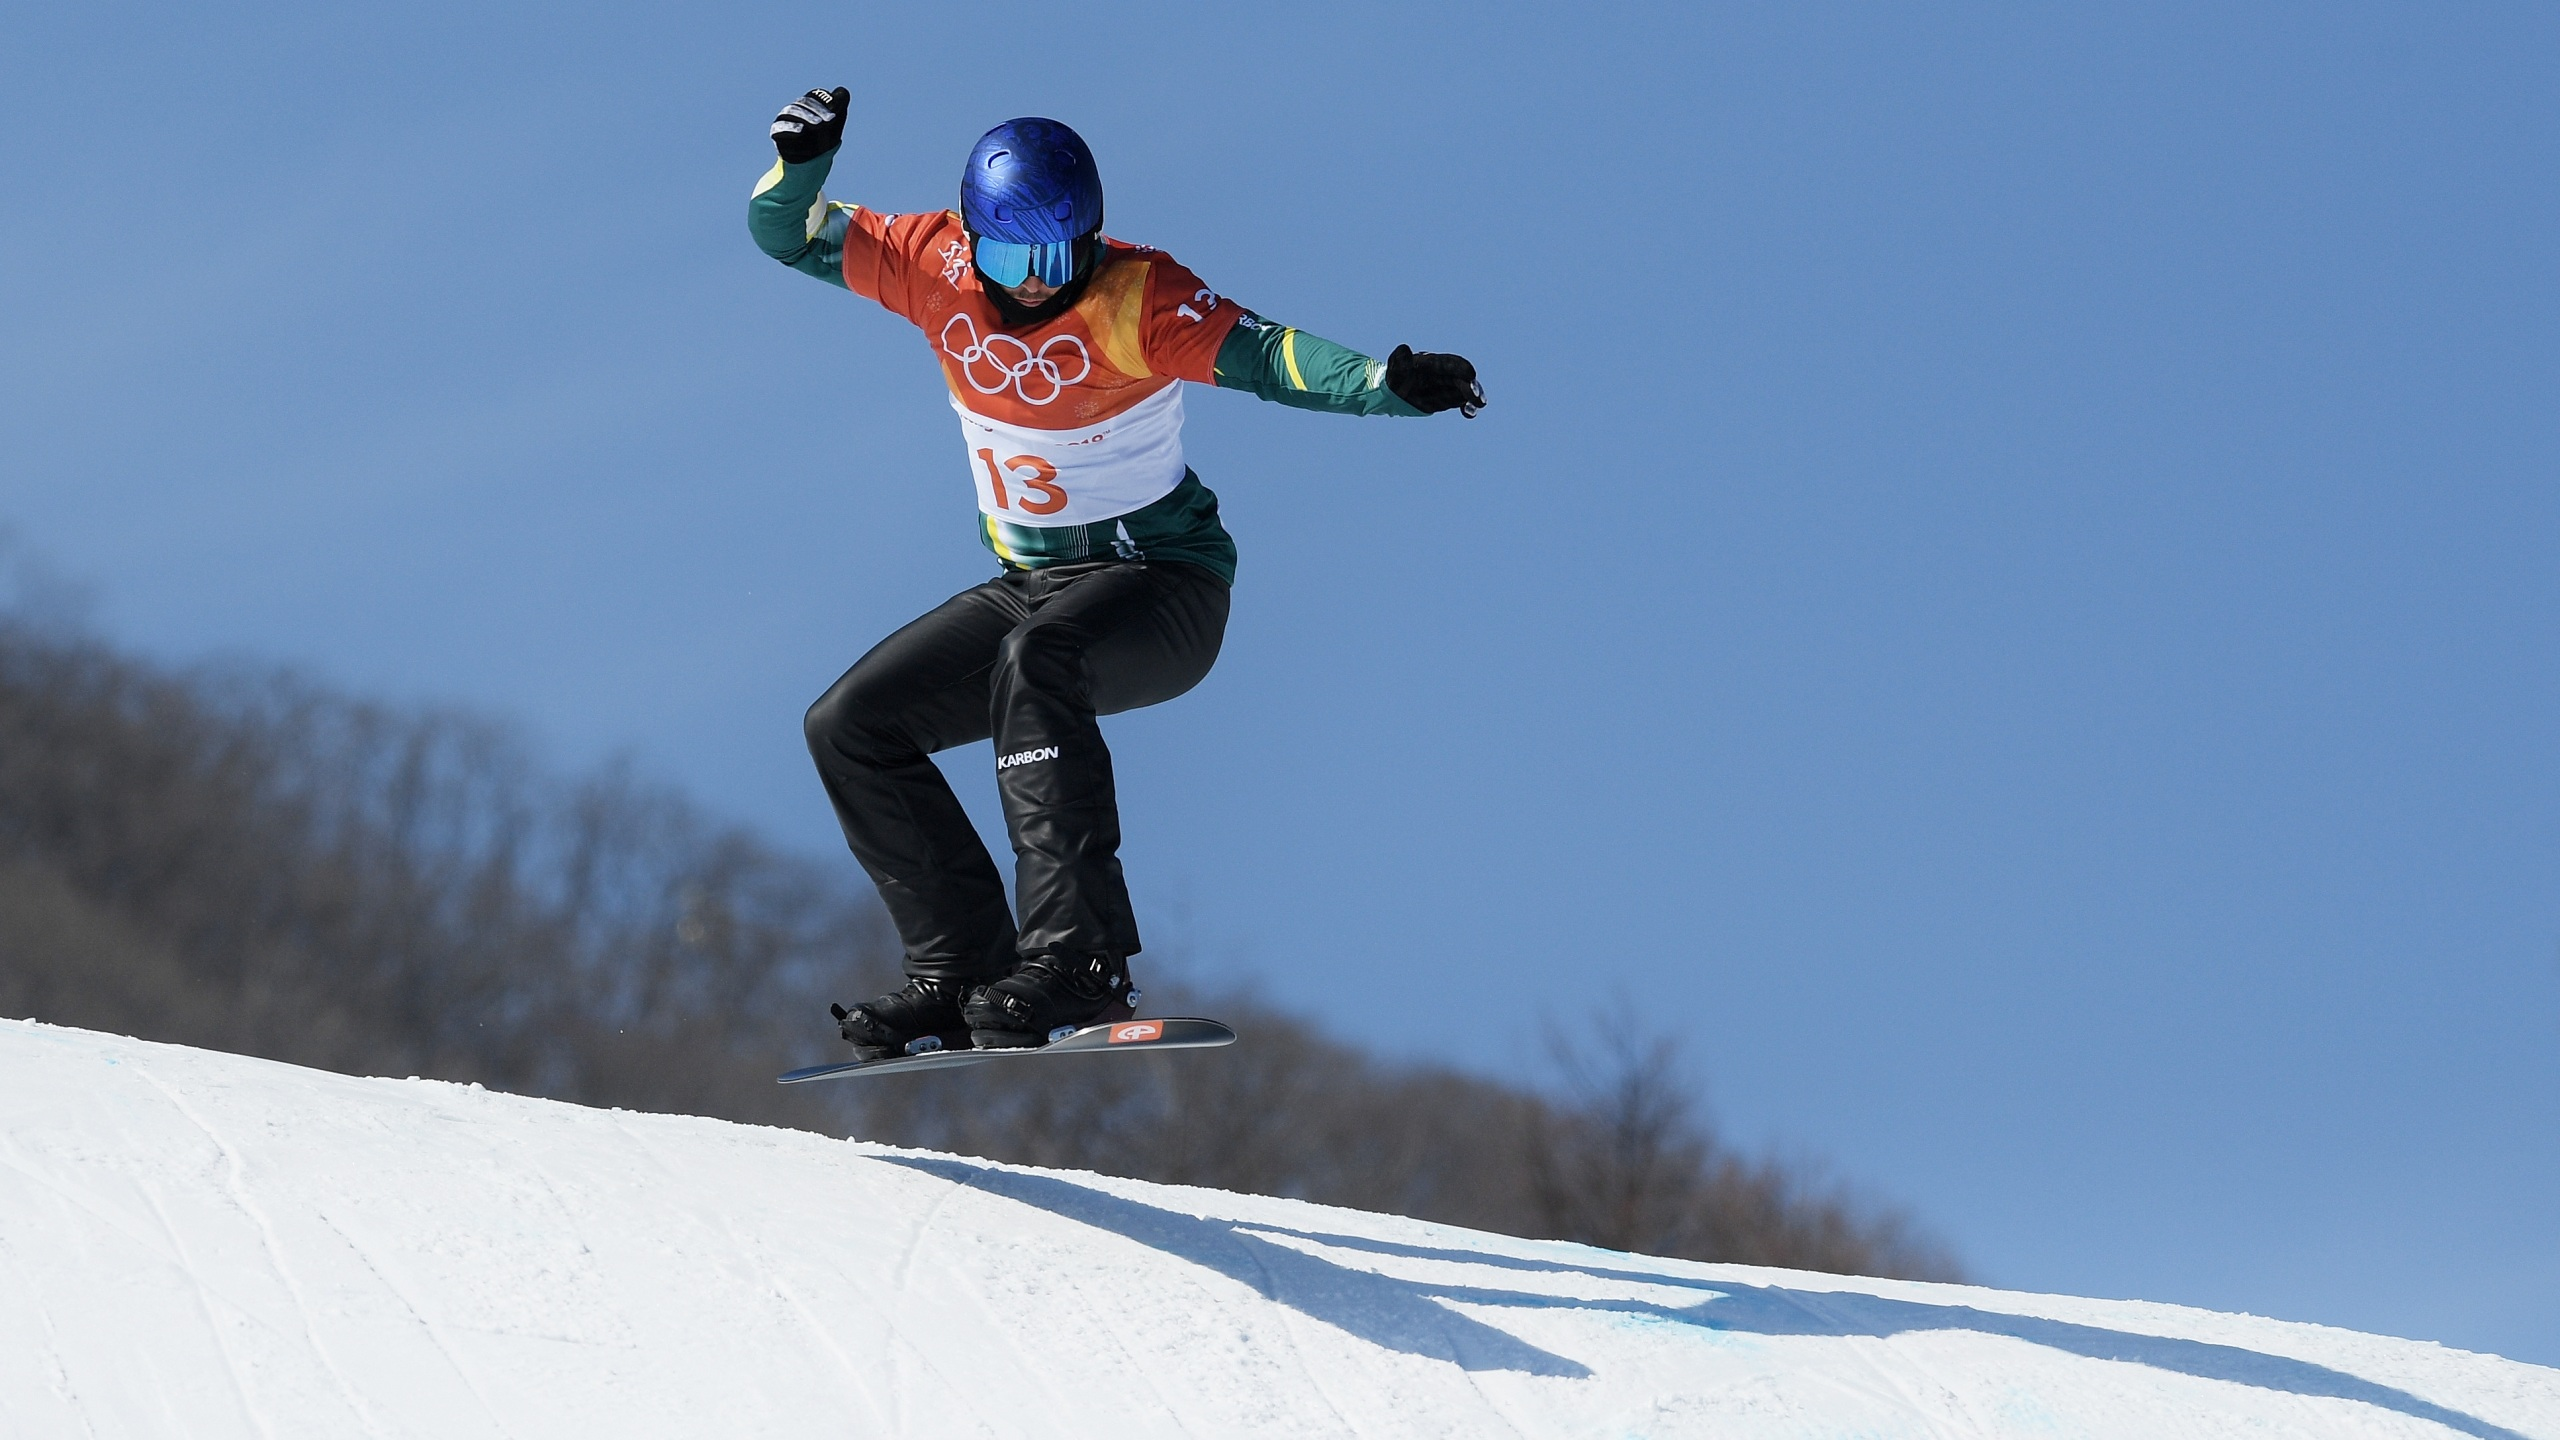 Alex Pullin of Australia competes during the Men's Snowboard Cross Seeding on day six of the PyeongChang 2018 Winter Olympic Games. (Photo by David Ramos/Getty Images)